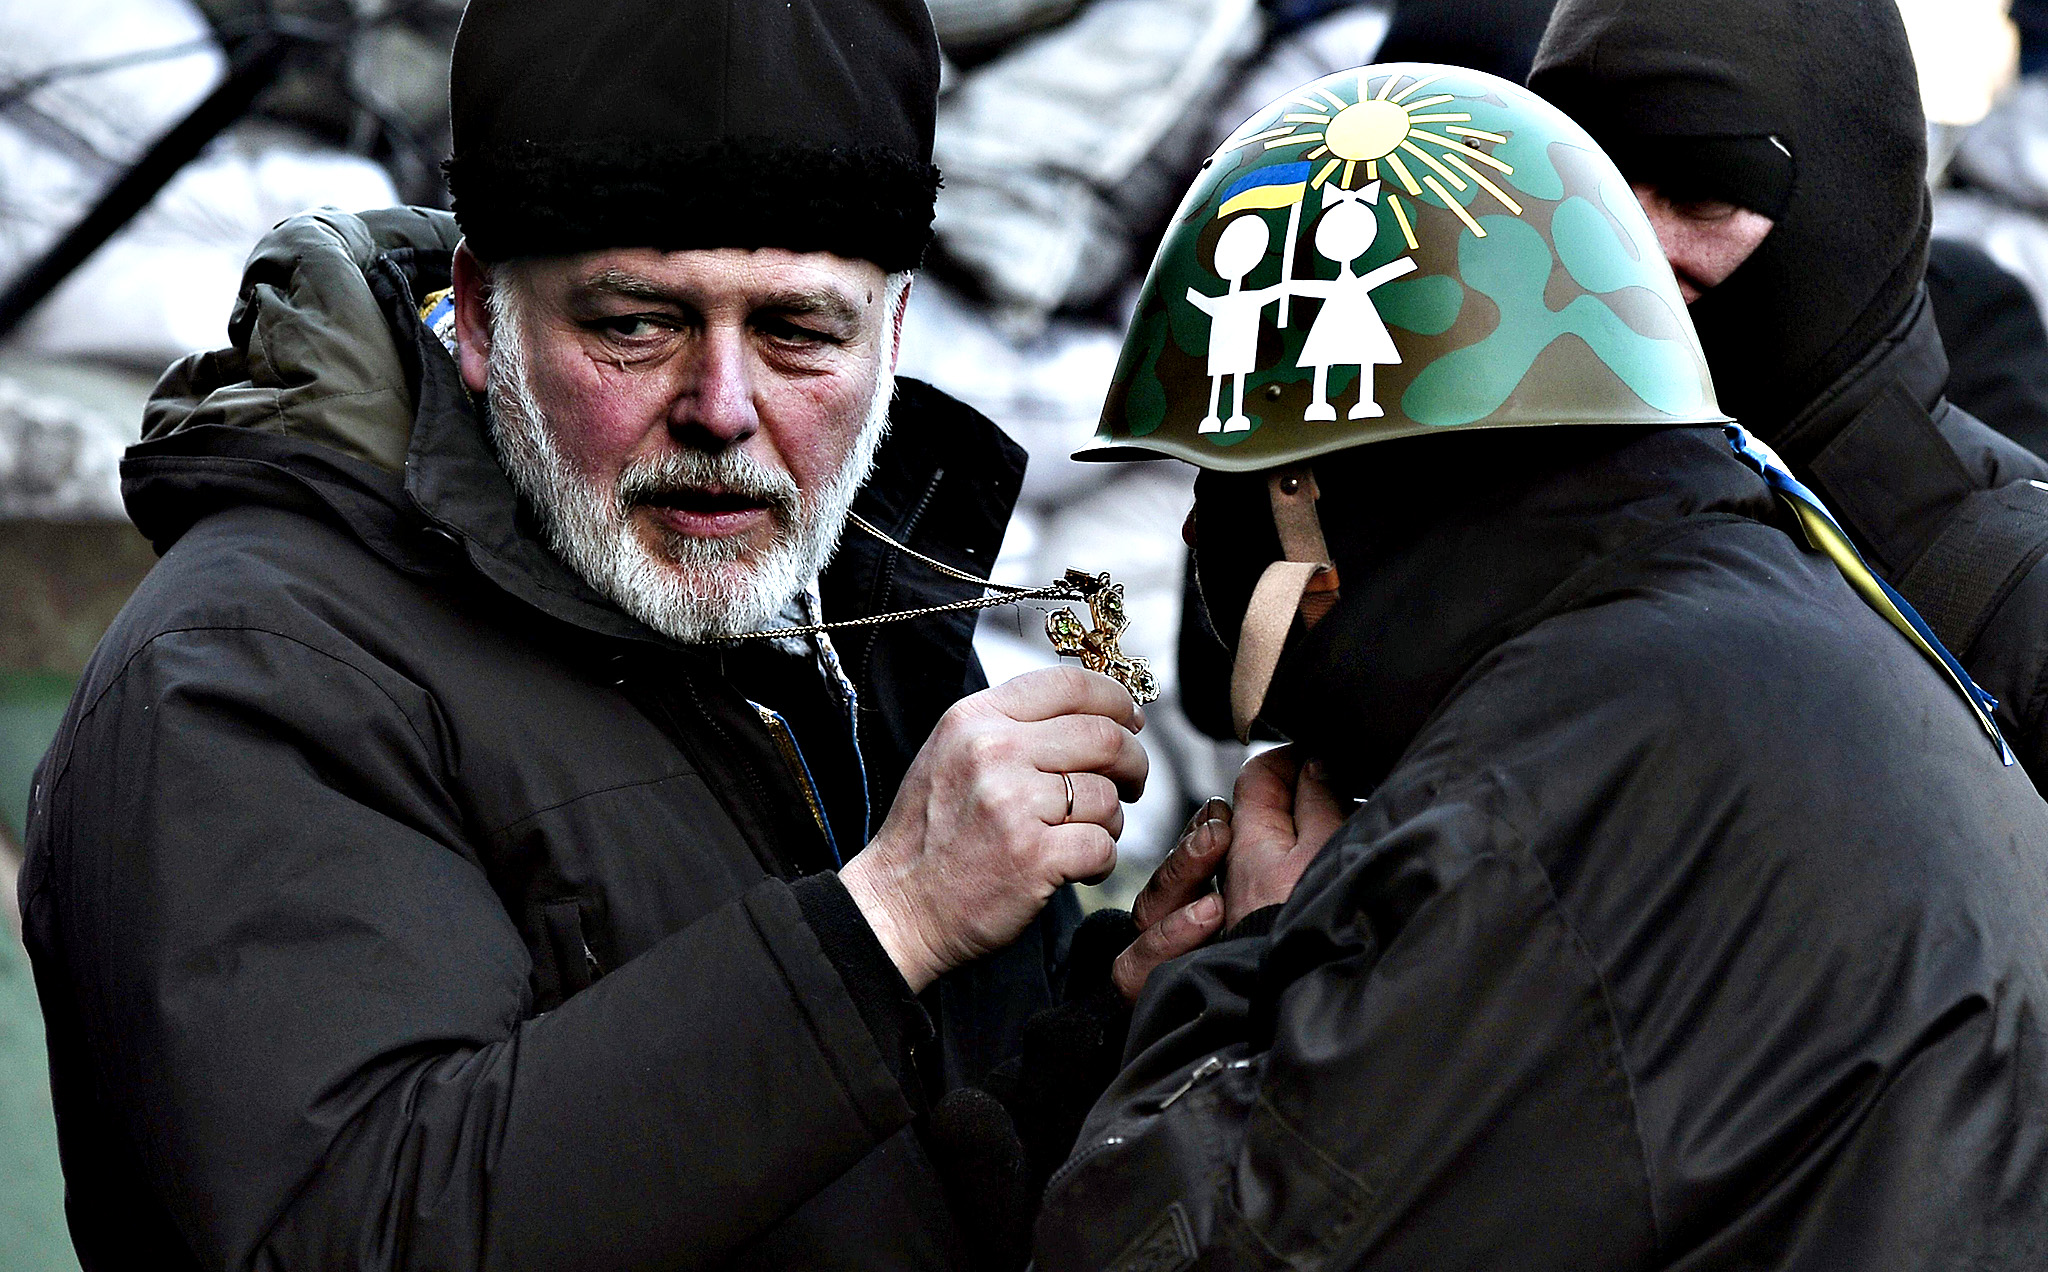 A priest blesses an anti-government protester at a road block in Kiev on February 5, 2014. Ukraine's parliament will try again on February 5 to agree on curbing the presidency's powers, while the EU's foreign policy chief met embattled President Viktor Yanukovych to press for a resolution of the political crisis. The crisis has sparked tensions between the West, which is considering sanctions against Ukrainian officials, and Russia, which has accused the EU and US of interference in the former Soviet republic.